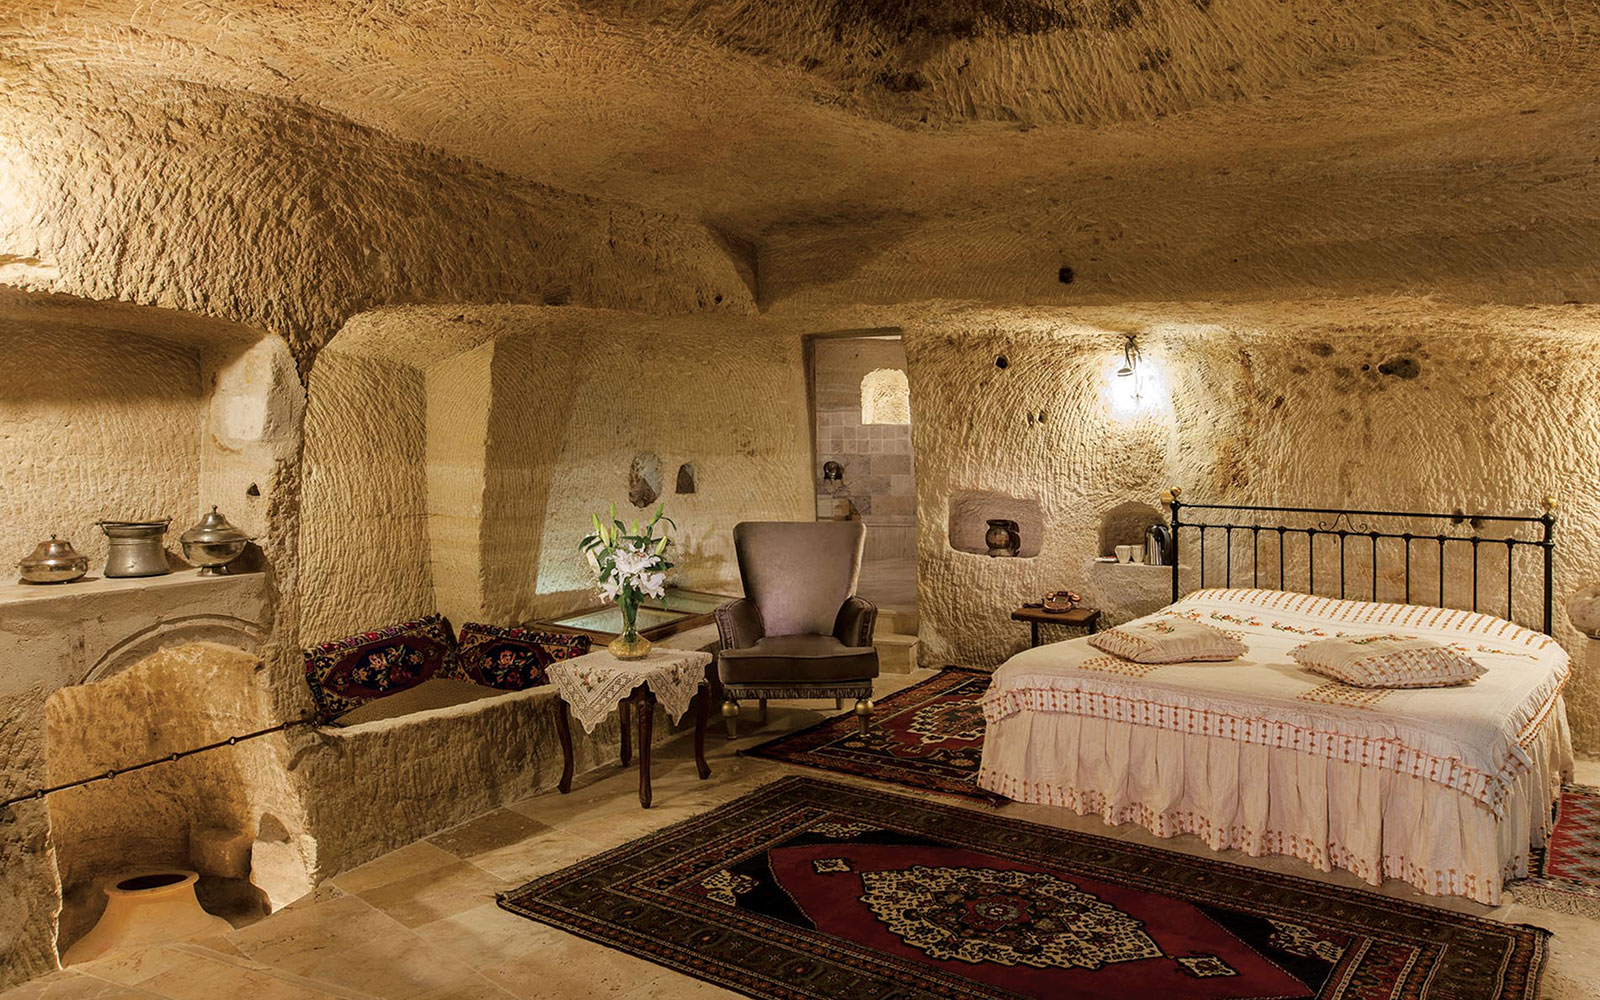 World's Most Unusual Hotels: Aydinli Cave House